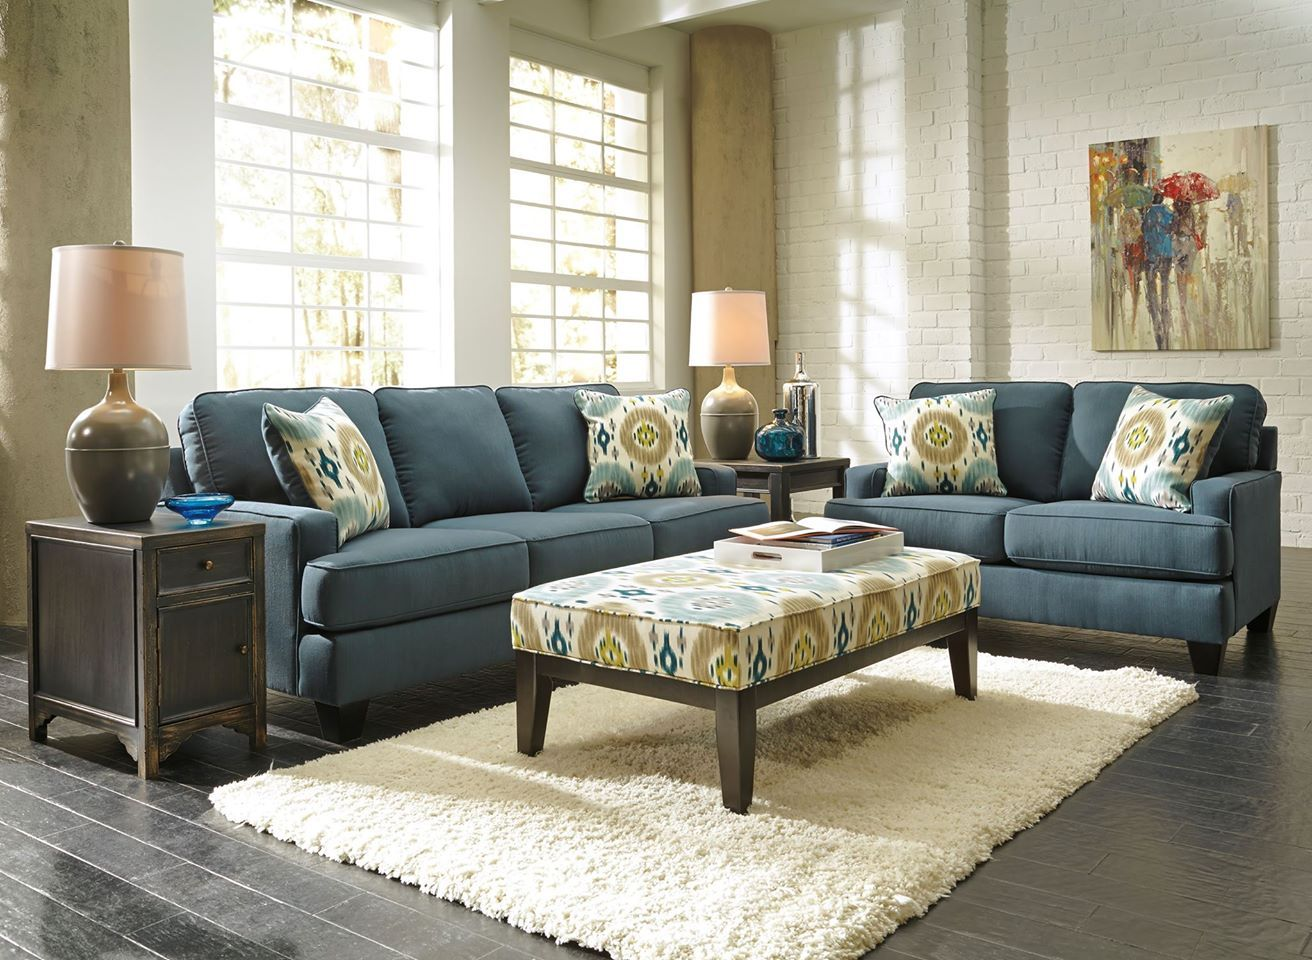 Beautiful Highland Sofa Available At Urban Home!